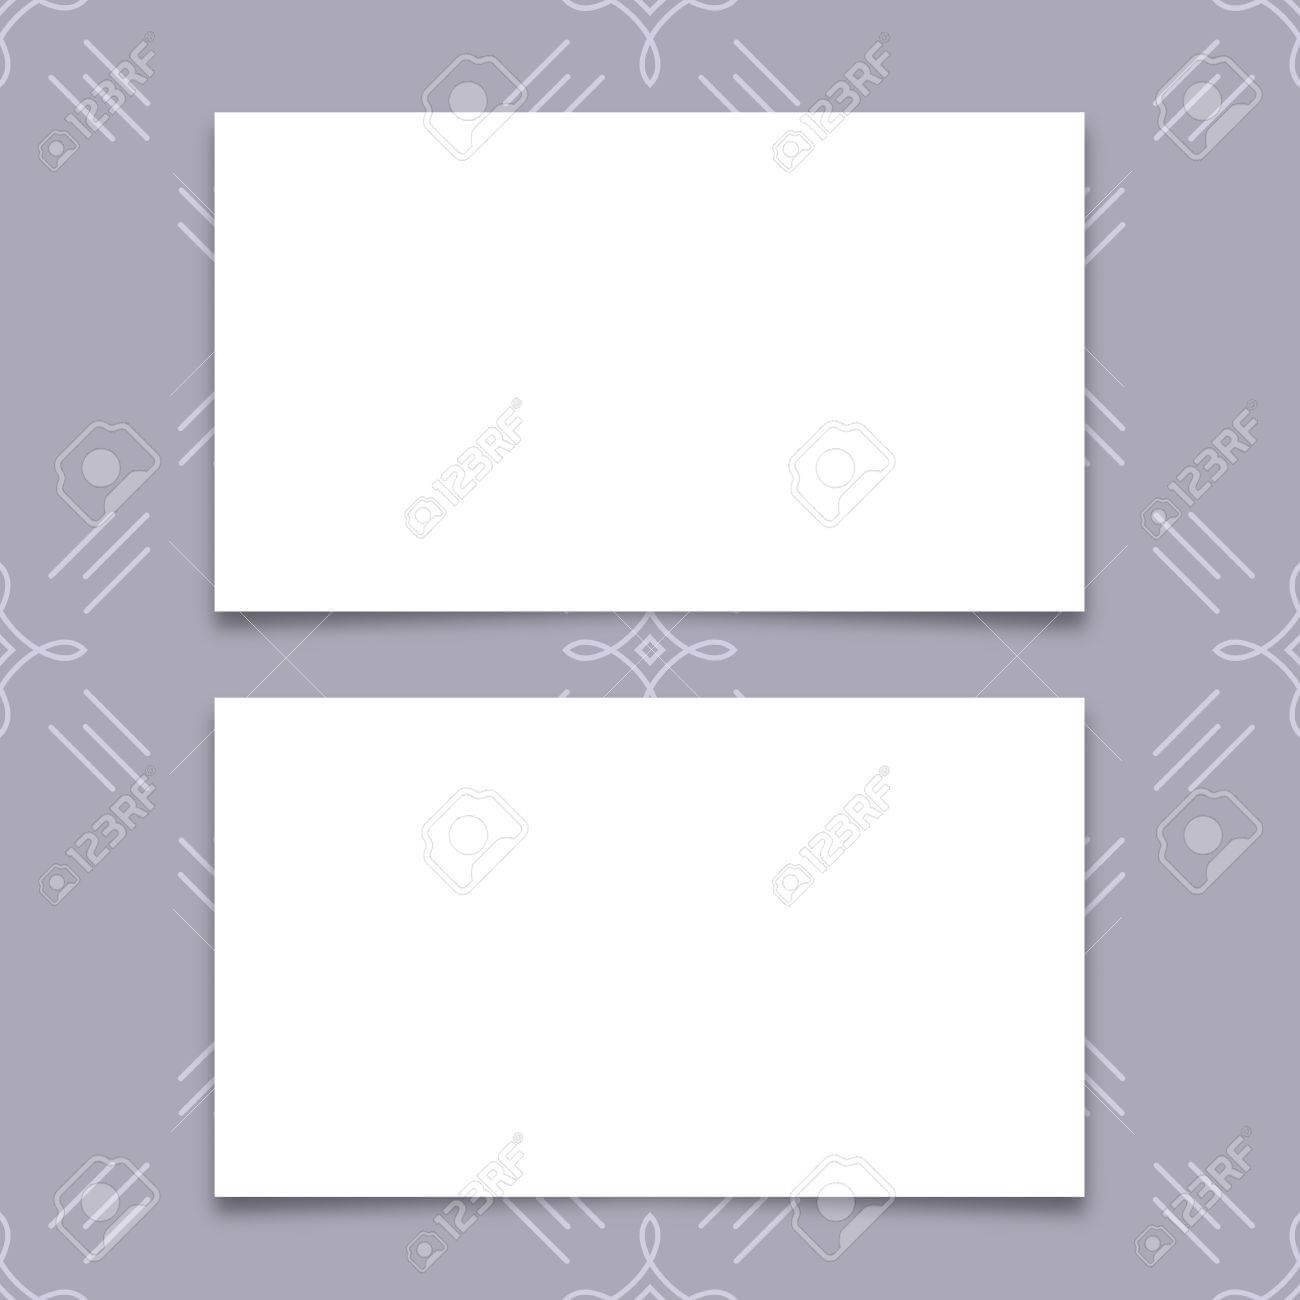 Mock Up Business Card, Blank Business Card Templates With Soft.. Within Plain Business Card Template